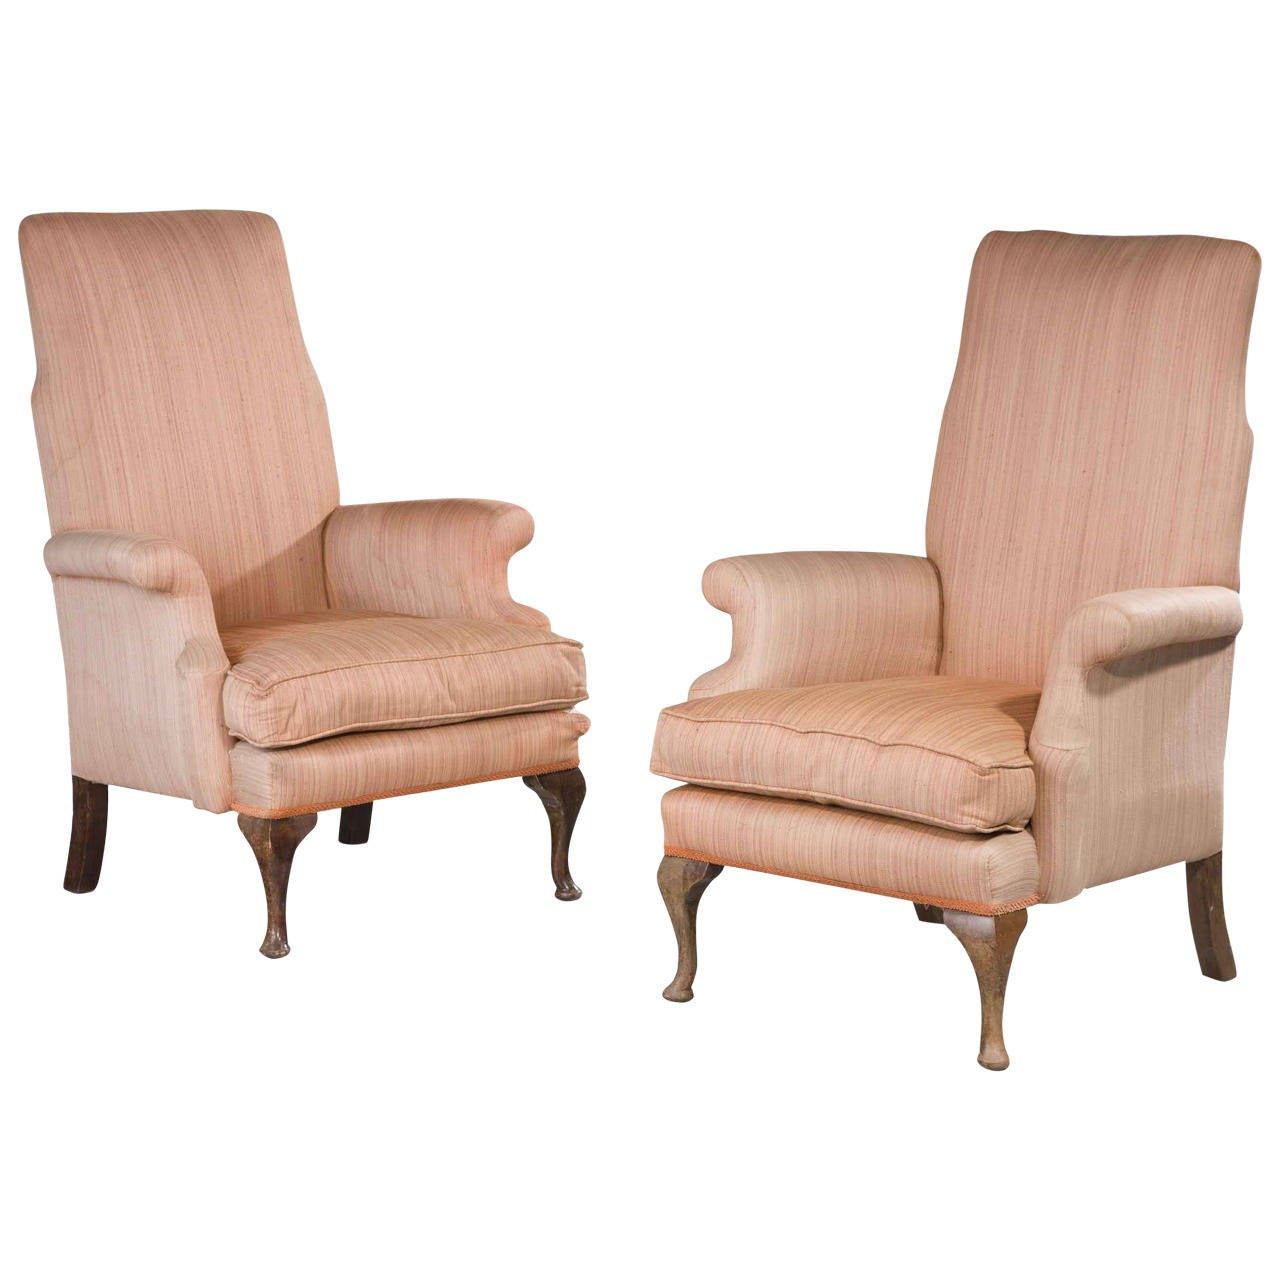 Pair of mid 20th century armchairs at 1stdibs for Mid 20th century furniture